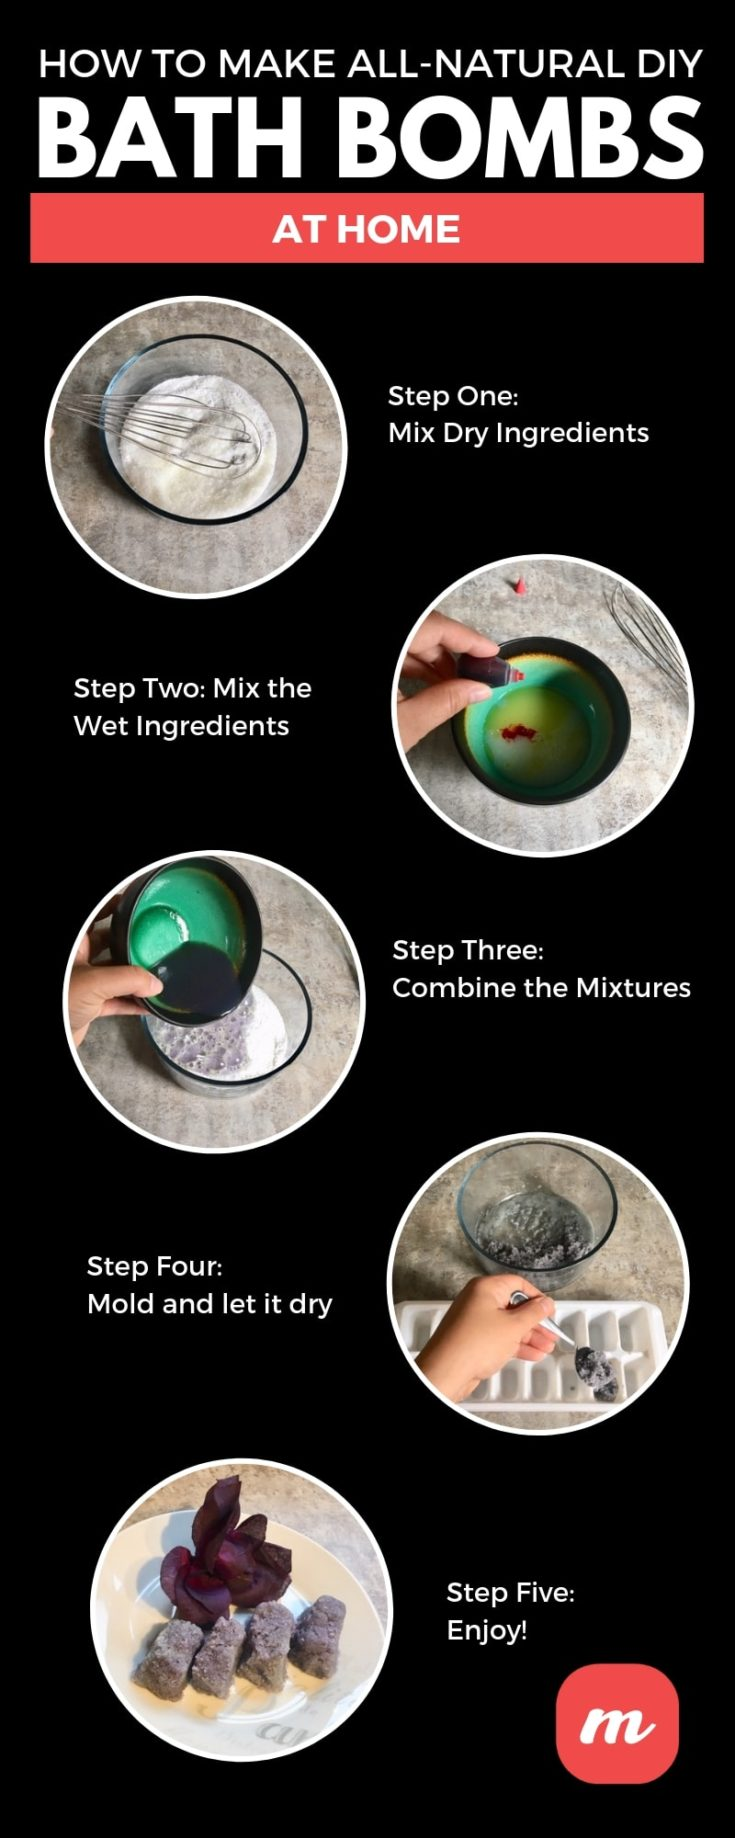 An infographic on How to Make All-Natural DIY Bath Bombs at Home